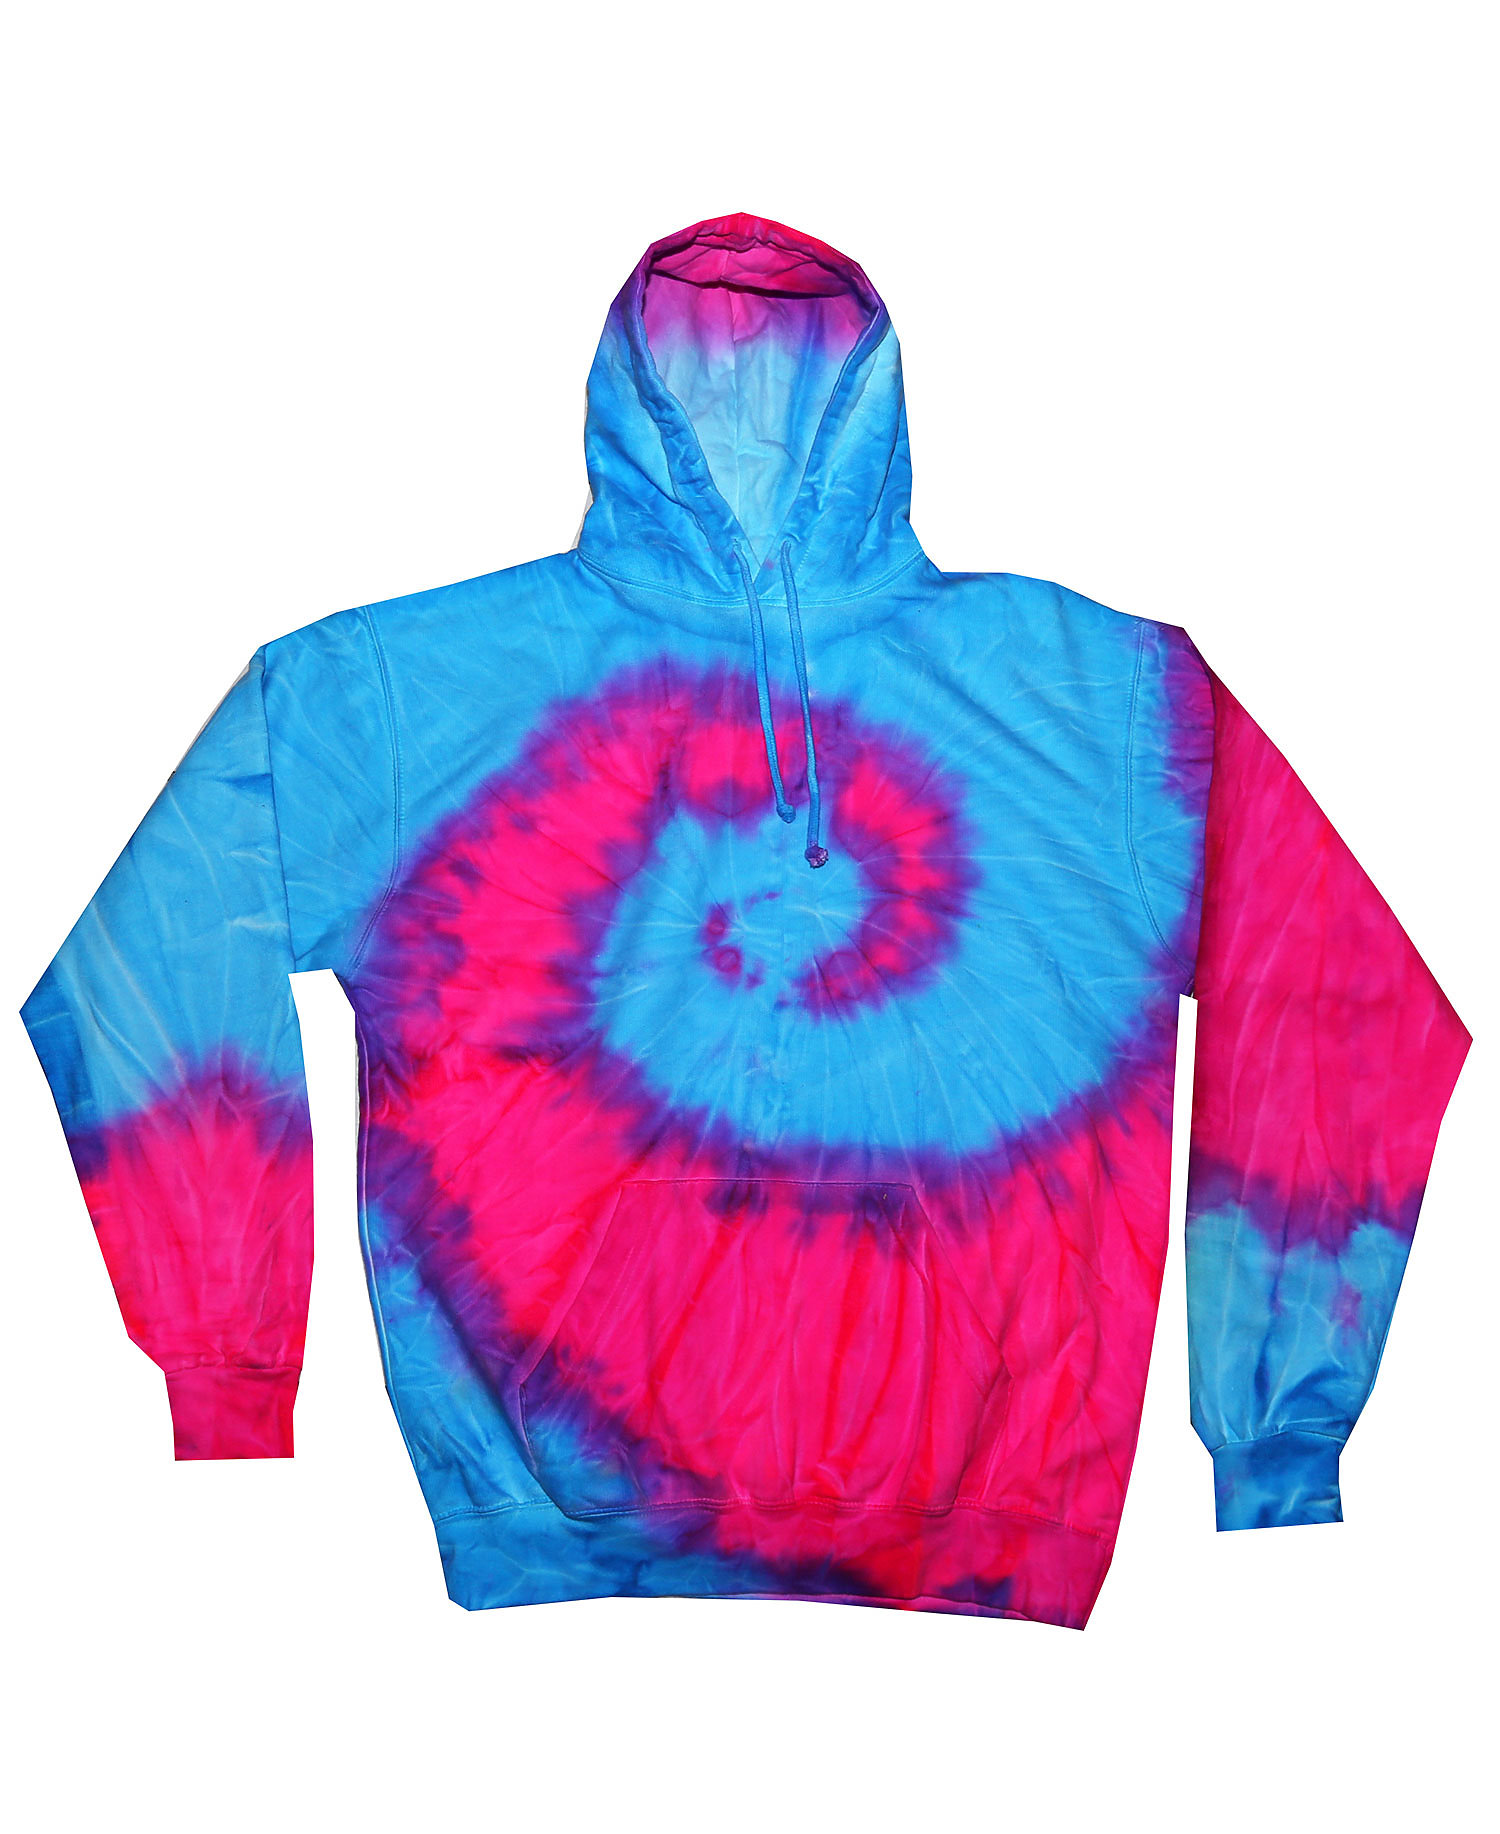 click to view FLO BLUE/ PINK